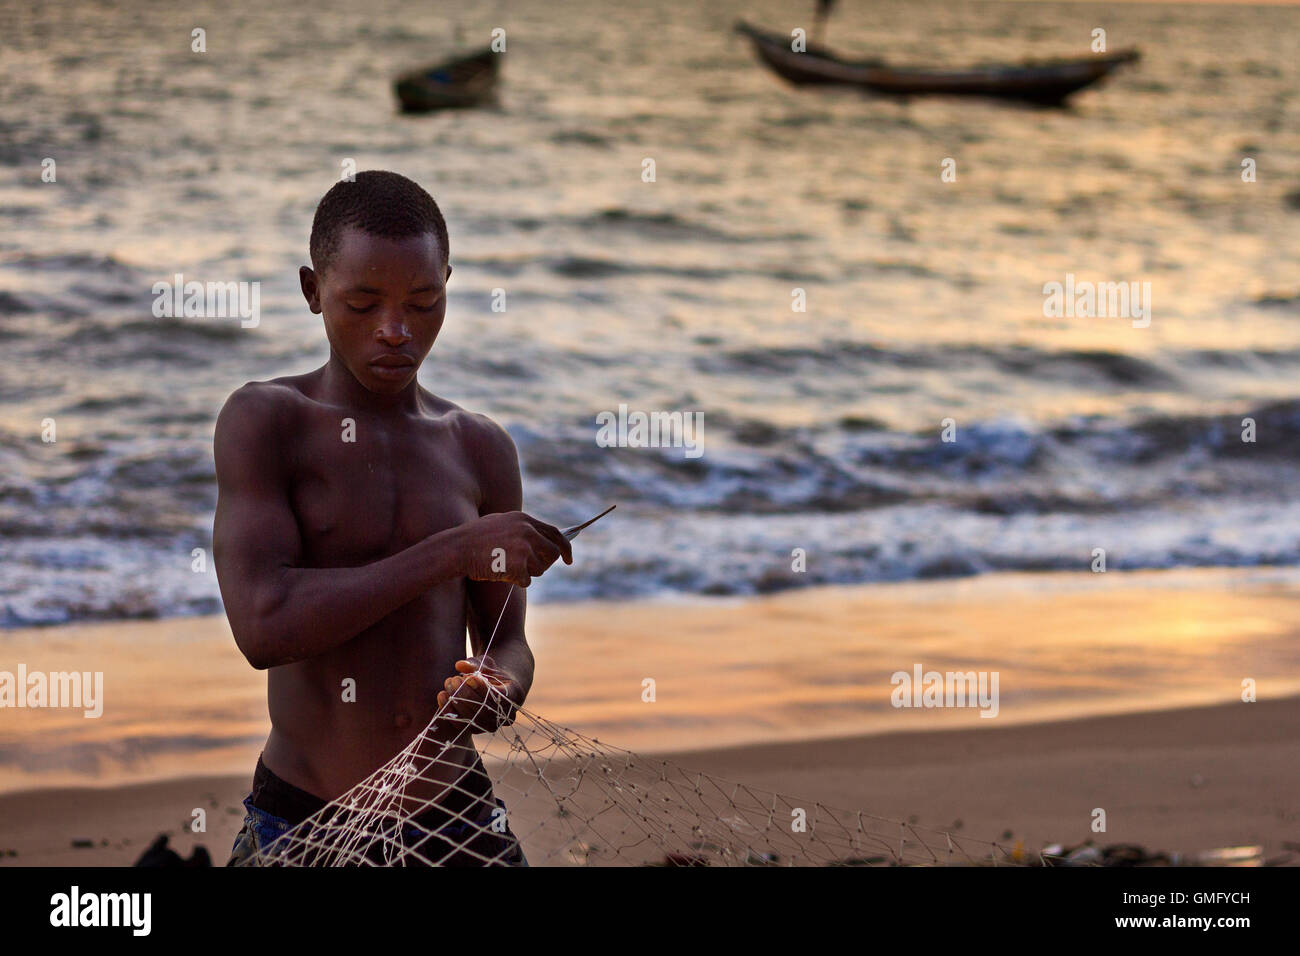 Yongoro, Sierra Leone - June 05, 2013: West Africa, the beaches of Yongoro in front of Freetown - Stock Image